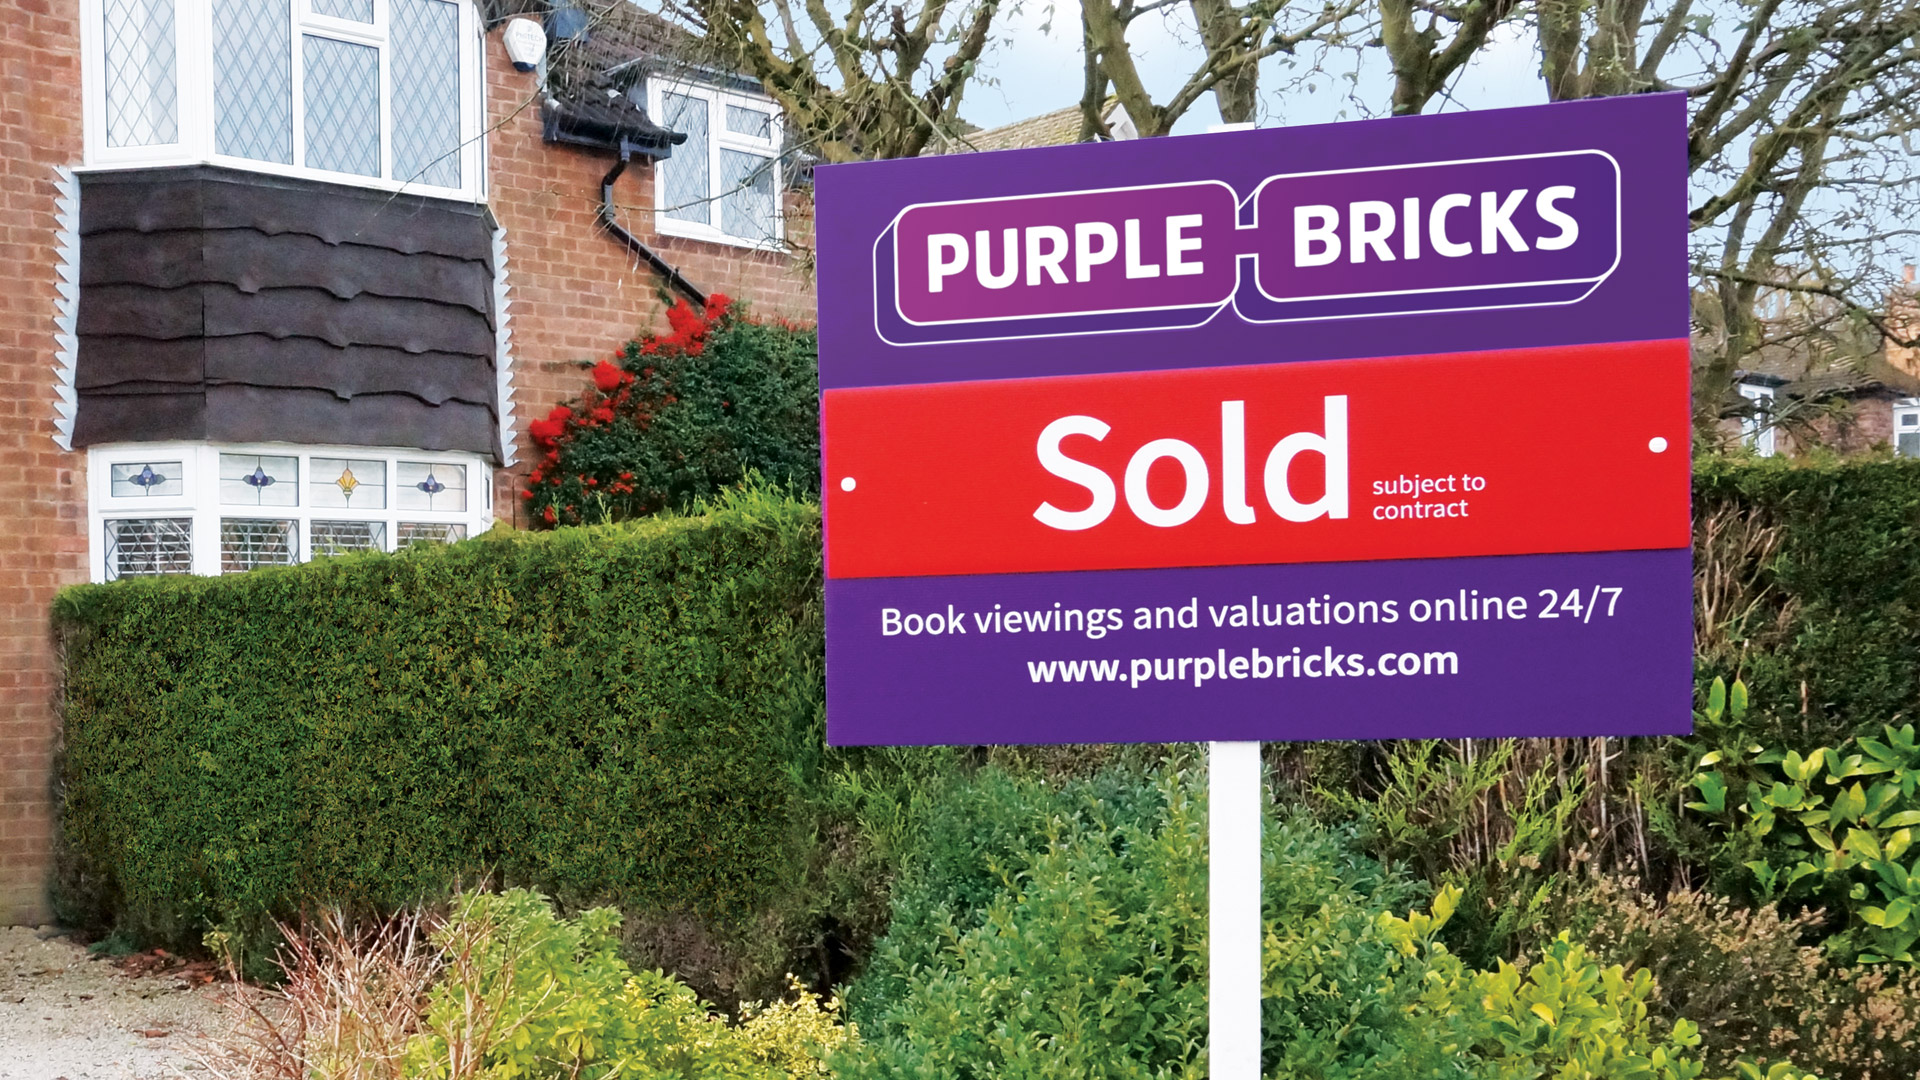 London house prices fall in Q3, Purplebricks trading update positive